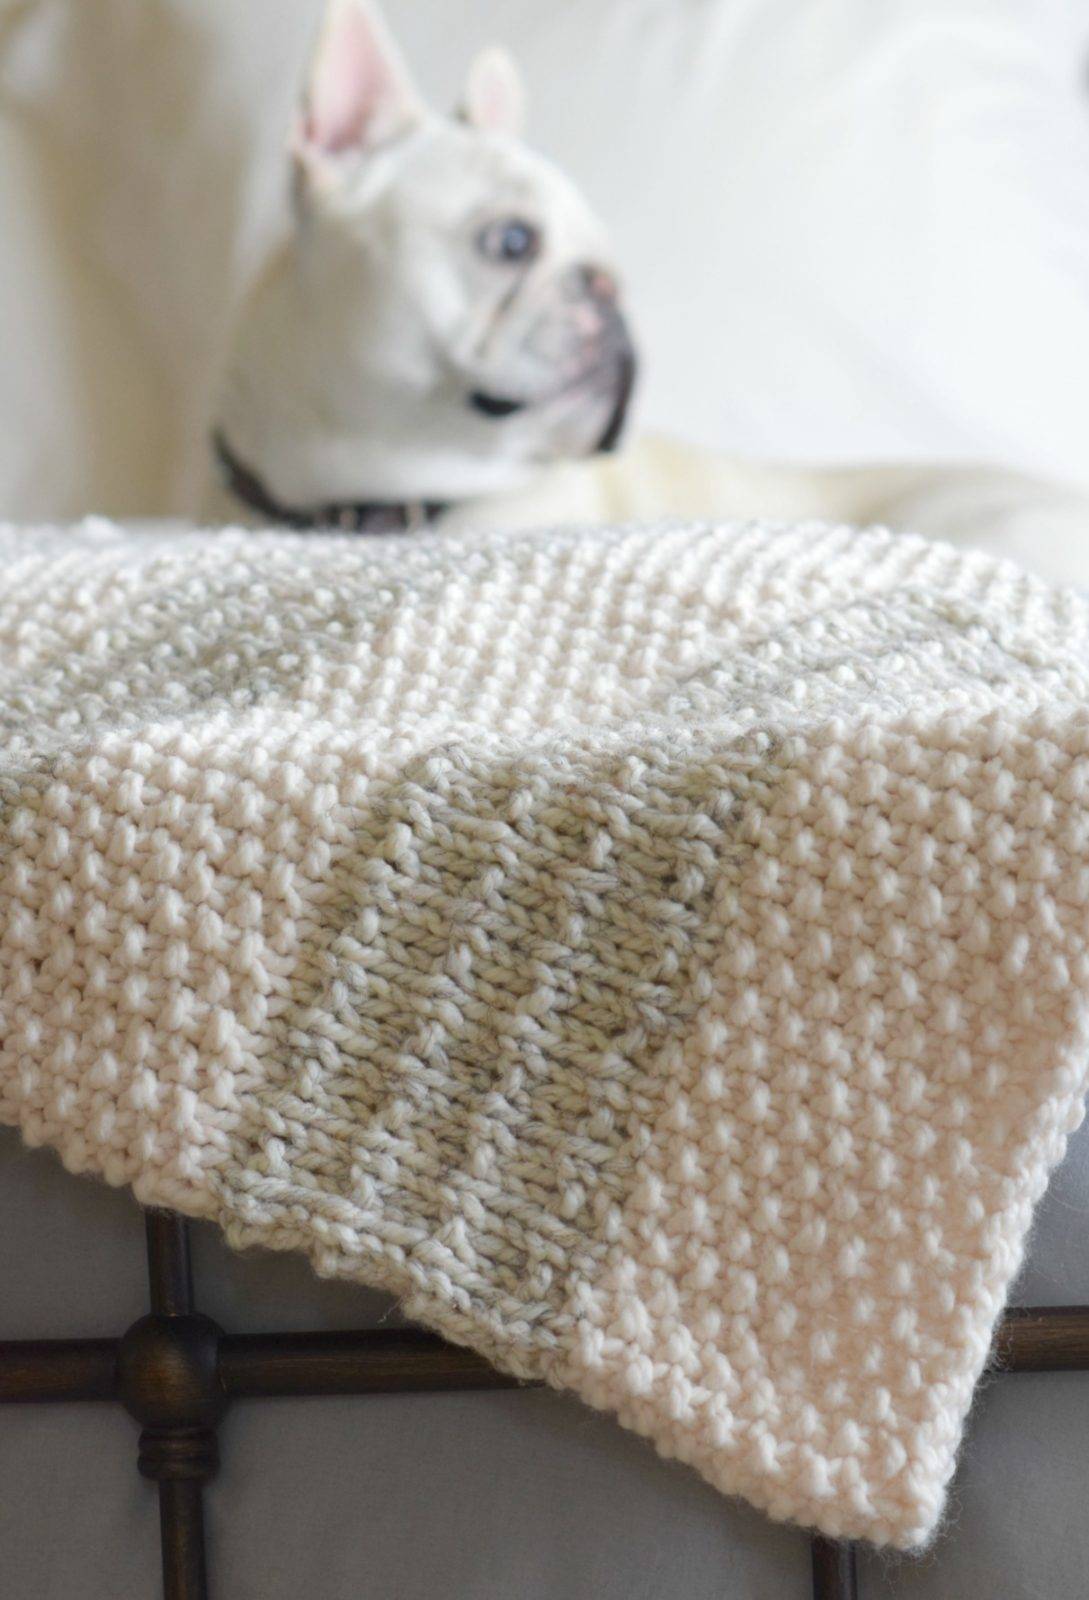 Knit Quilt Patterns : Easy Heirloom Knit Blanket Pattern   Mama In A Stitch